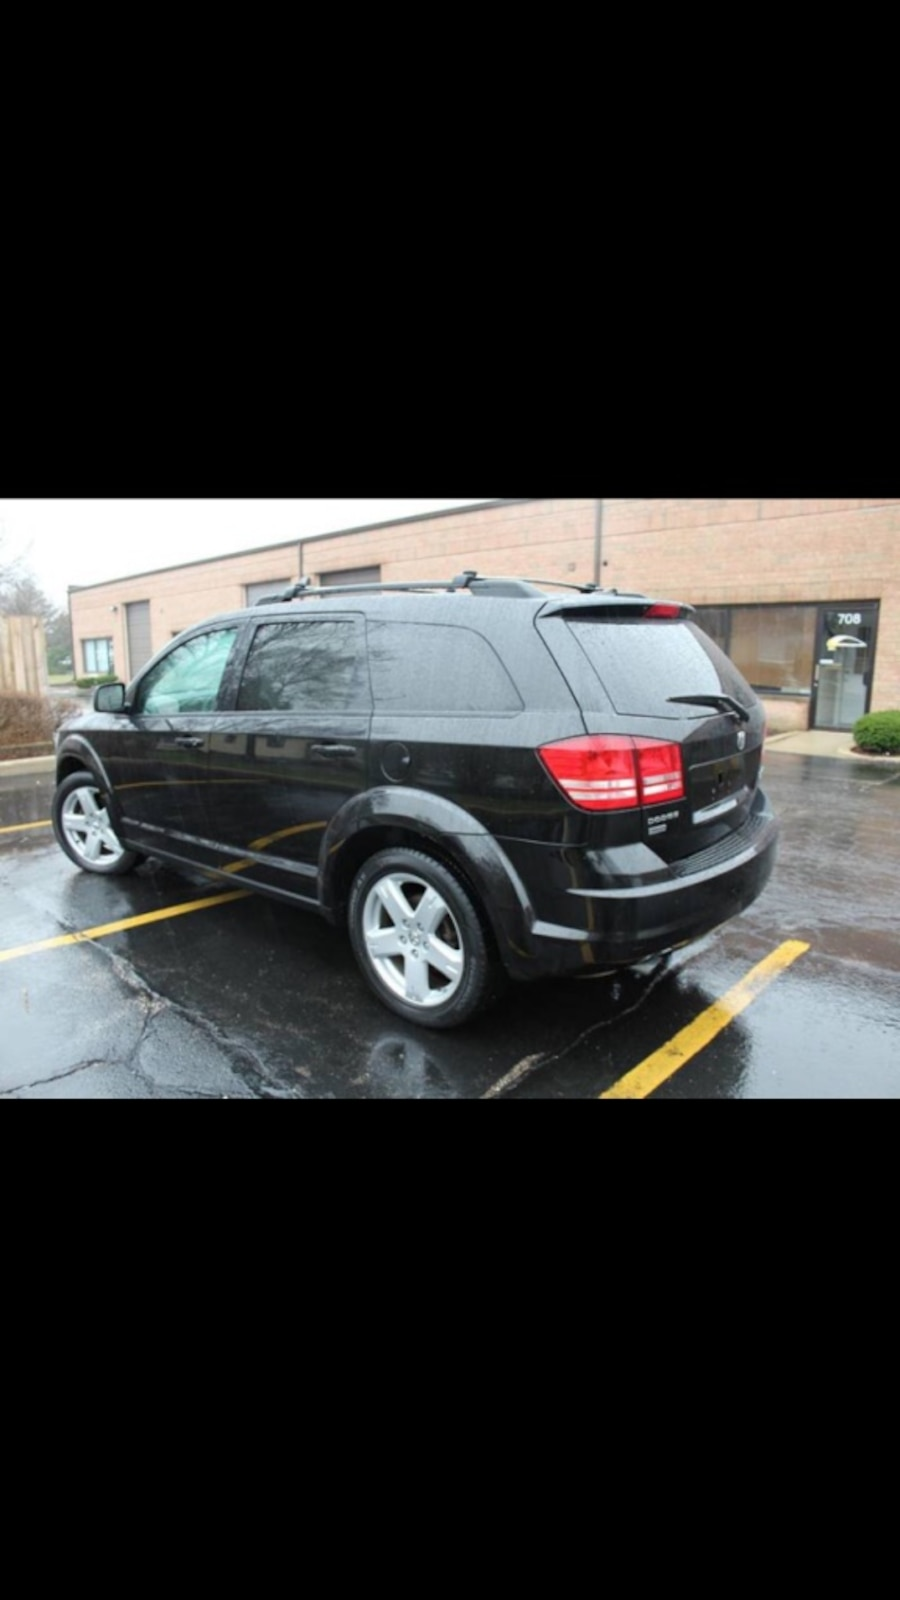 Cars For Sale Roselle Illinois